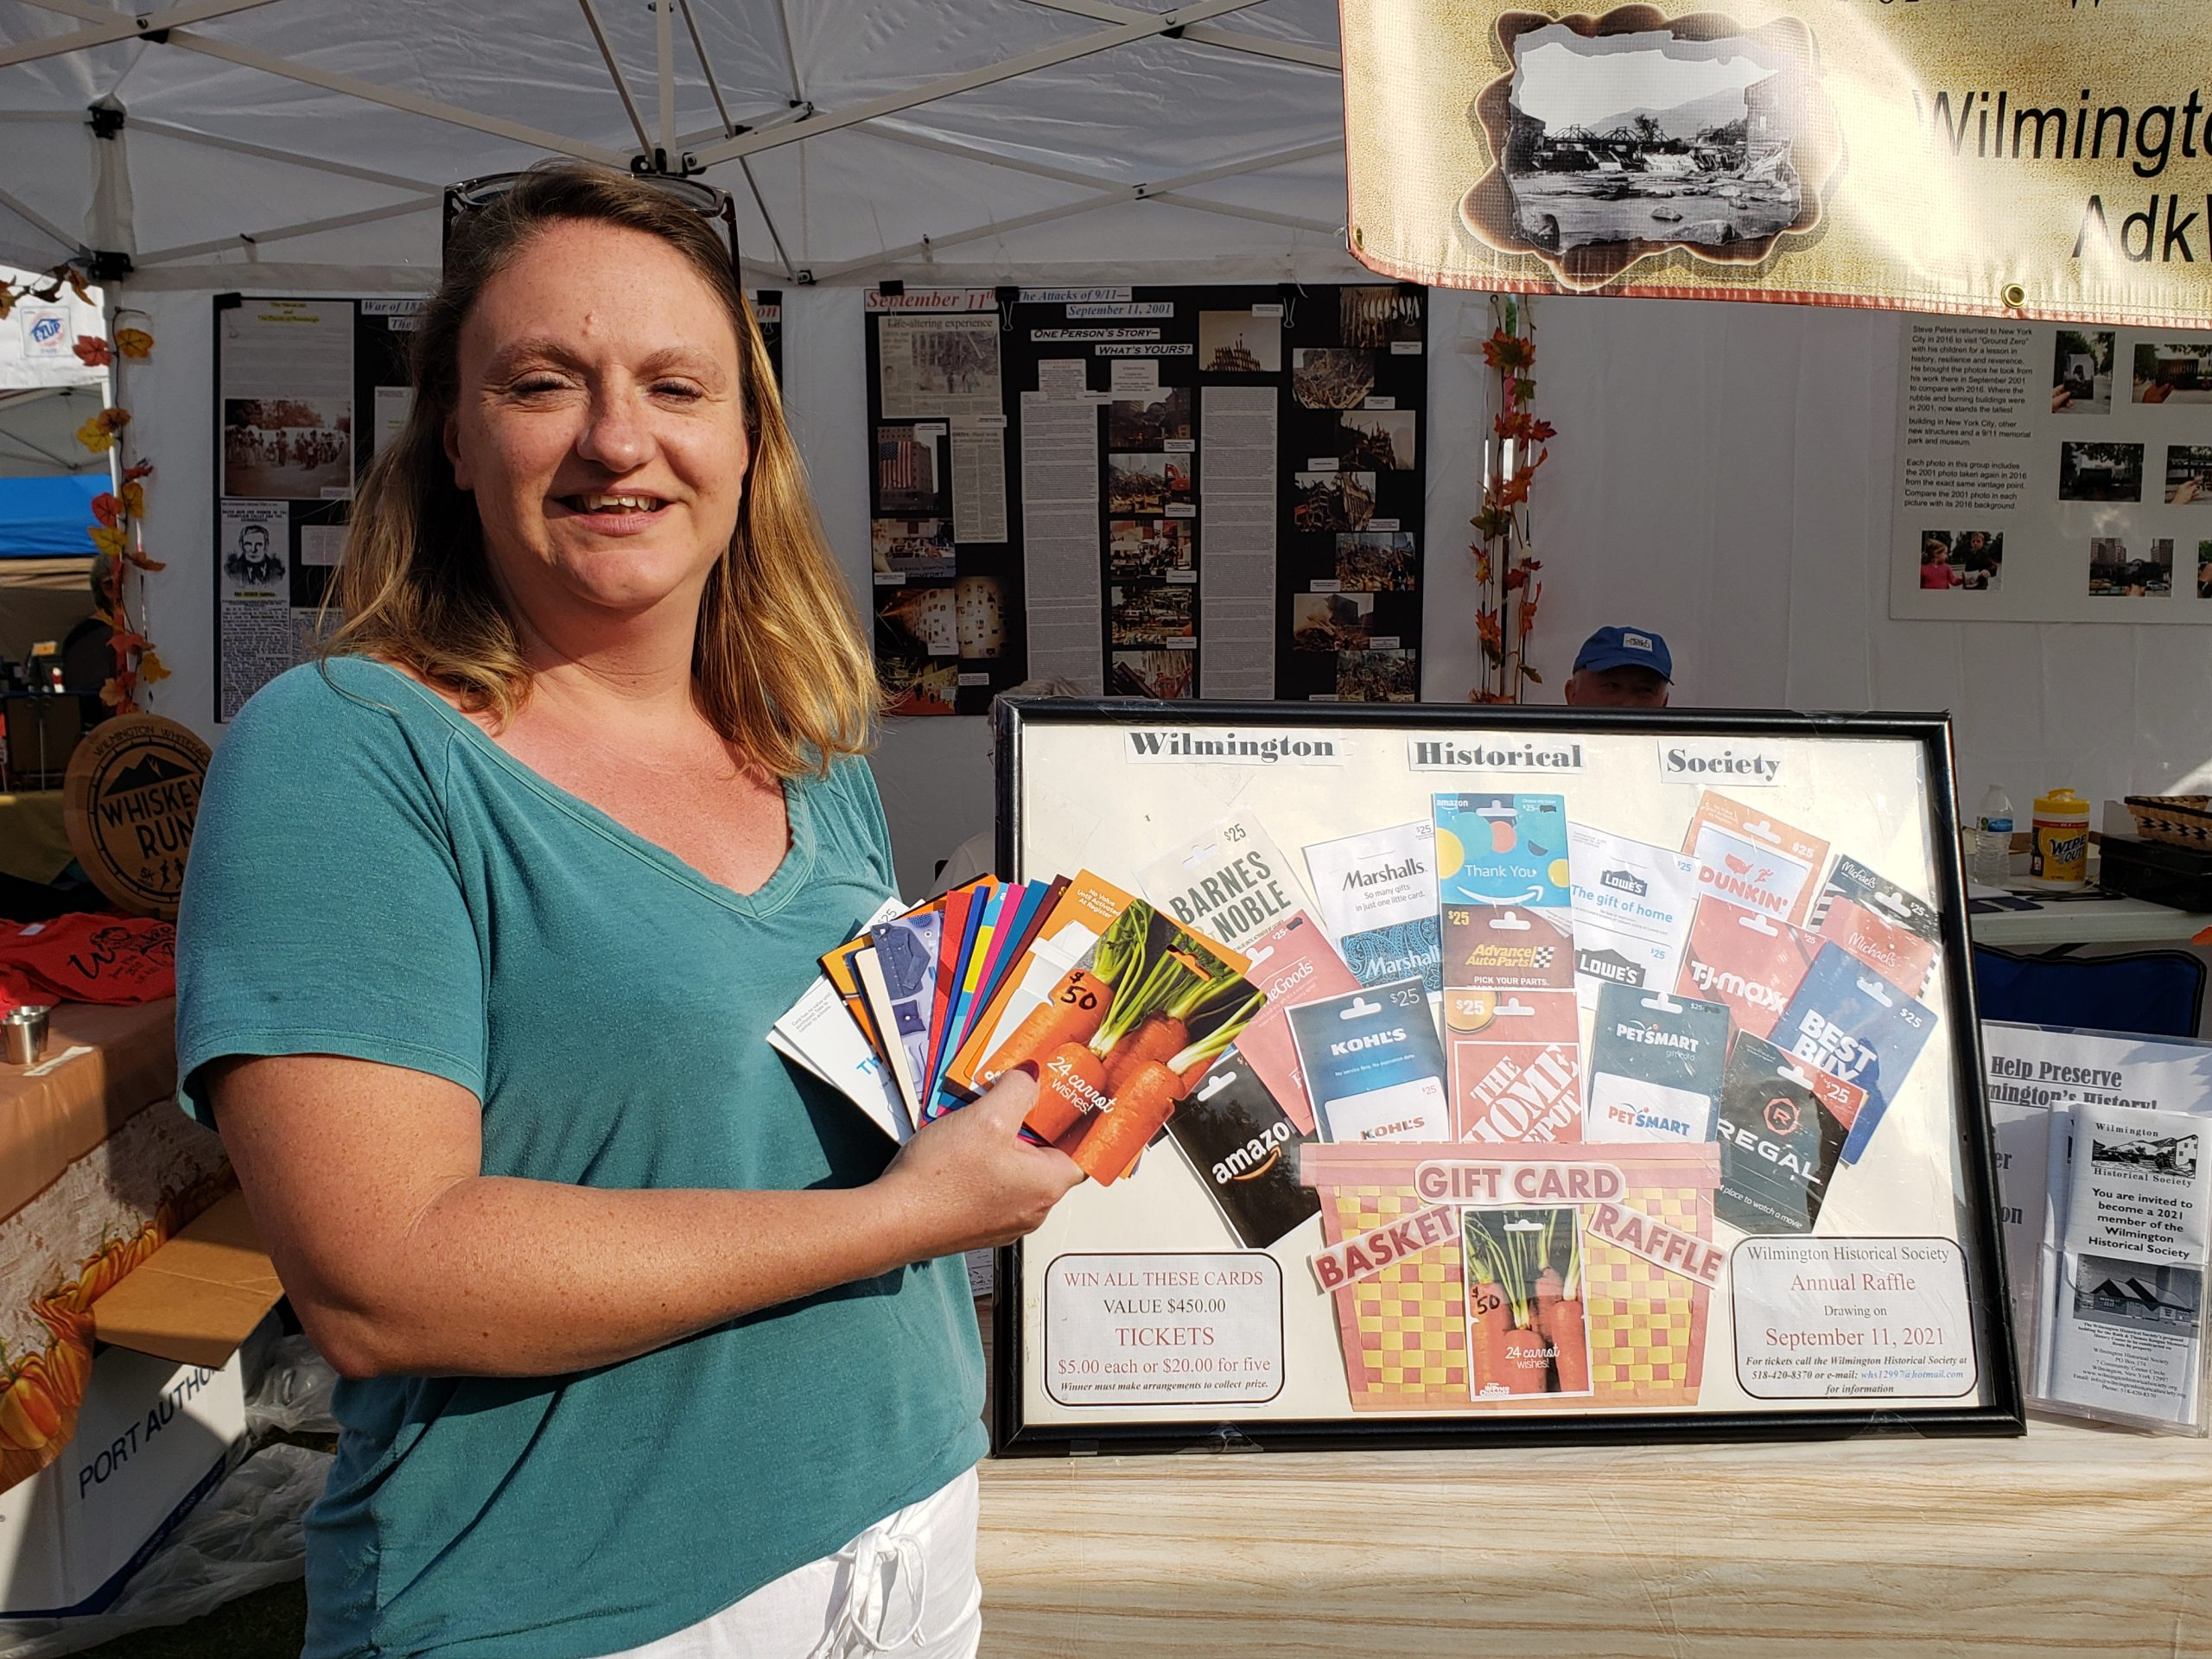 Festival of Colors on September 11th! Winner of the Gift Card Basket Raffle was Jess Ano of Wilmington!